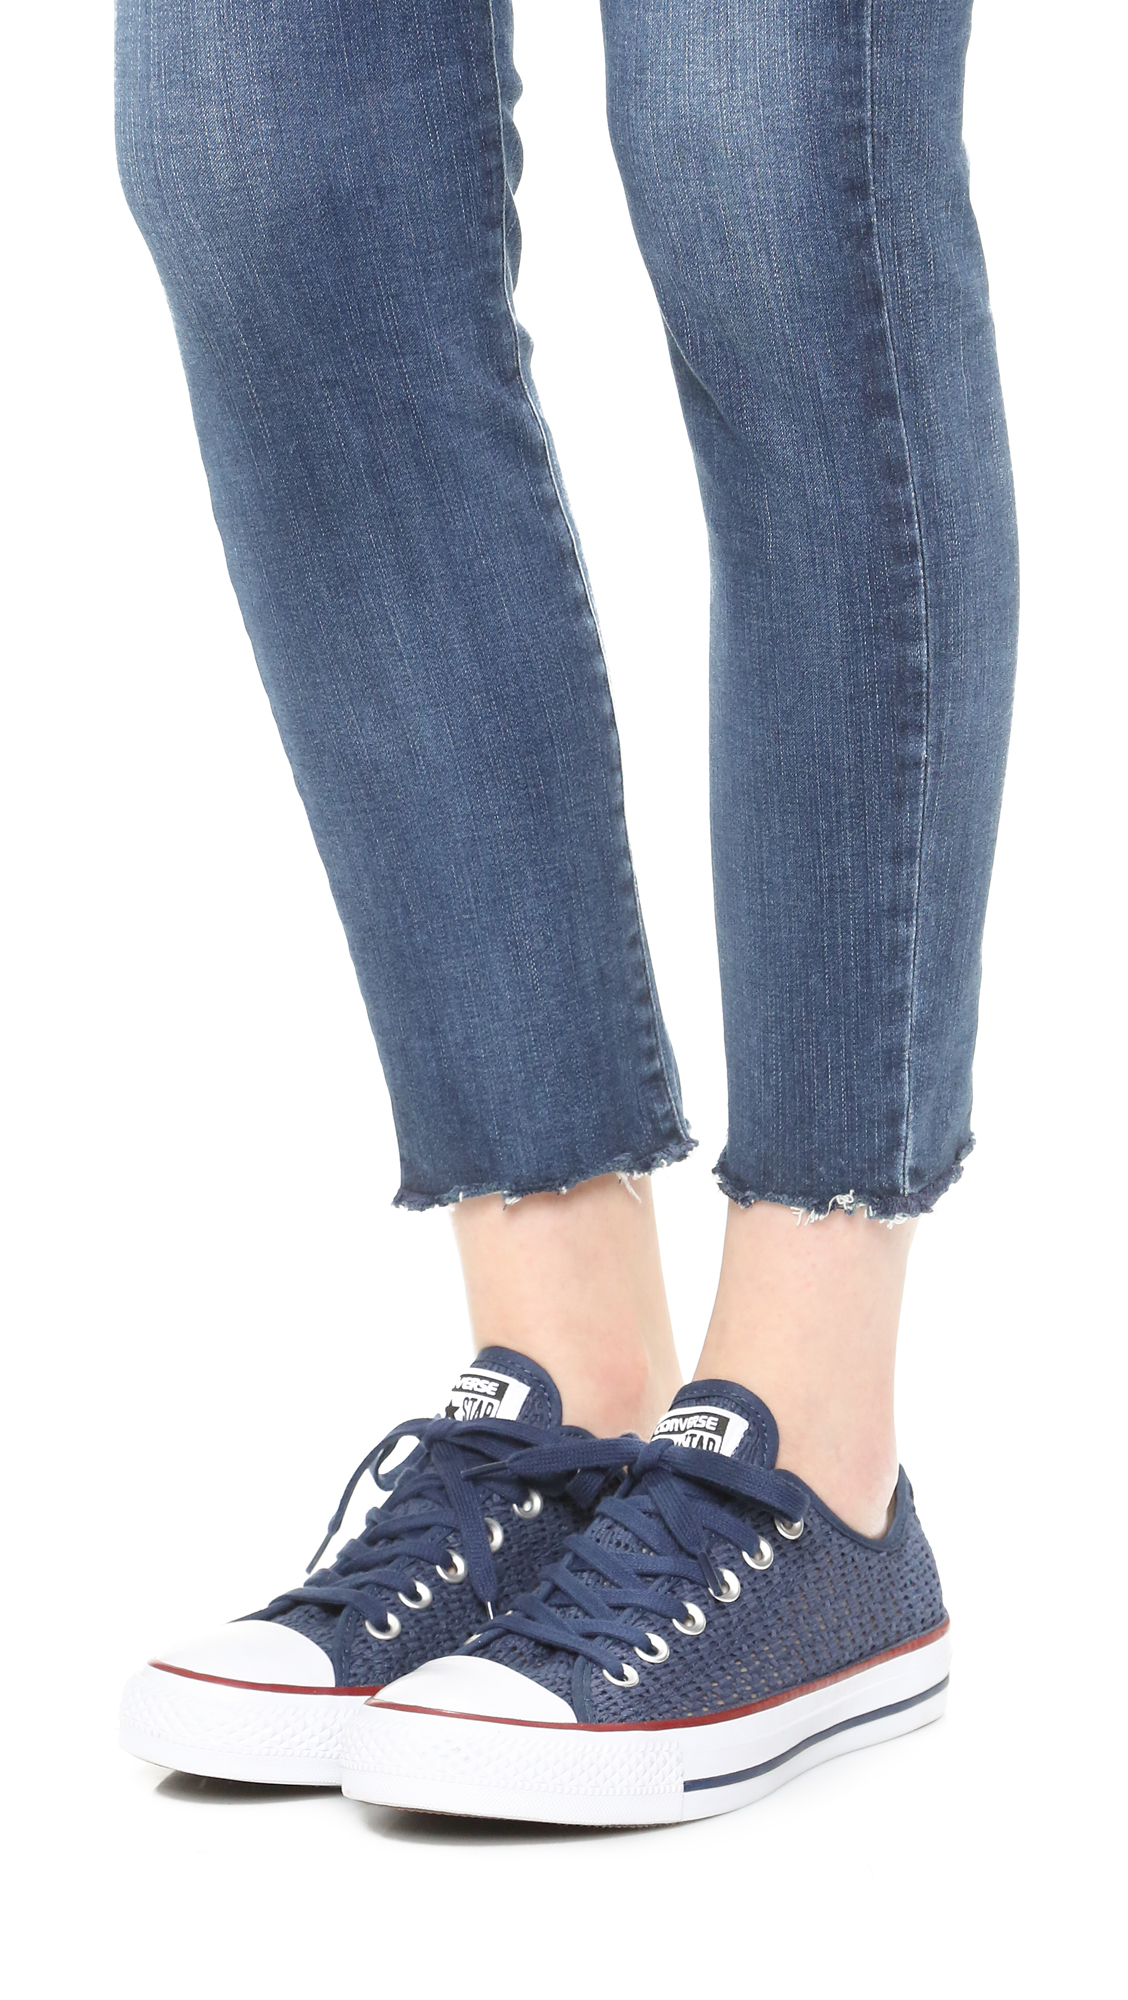 86fc140047f0 Gallery. Previously sold at  Shopbop · Women s Converse Chuck Taylor ...